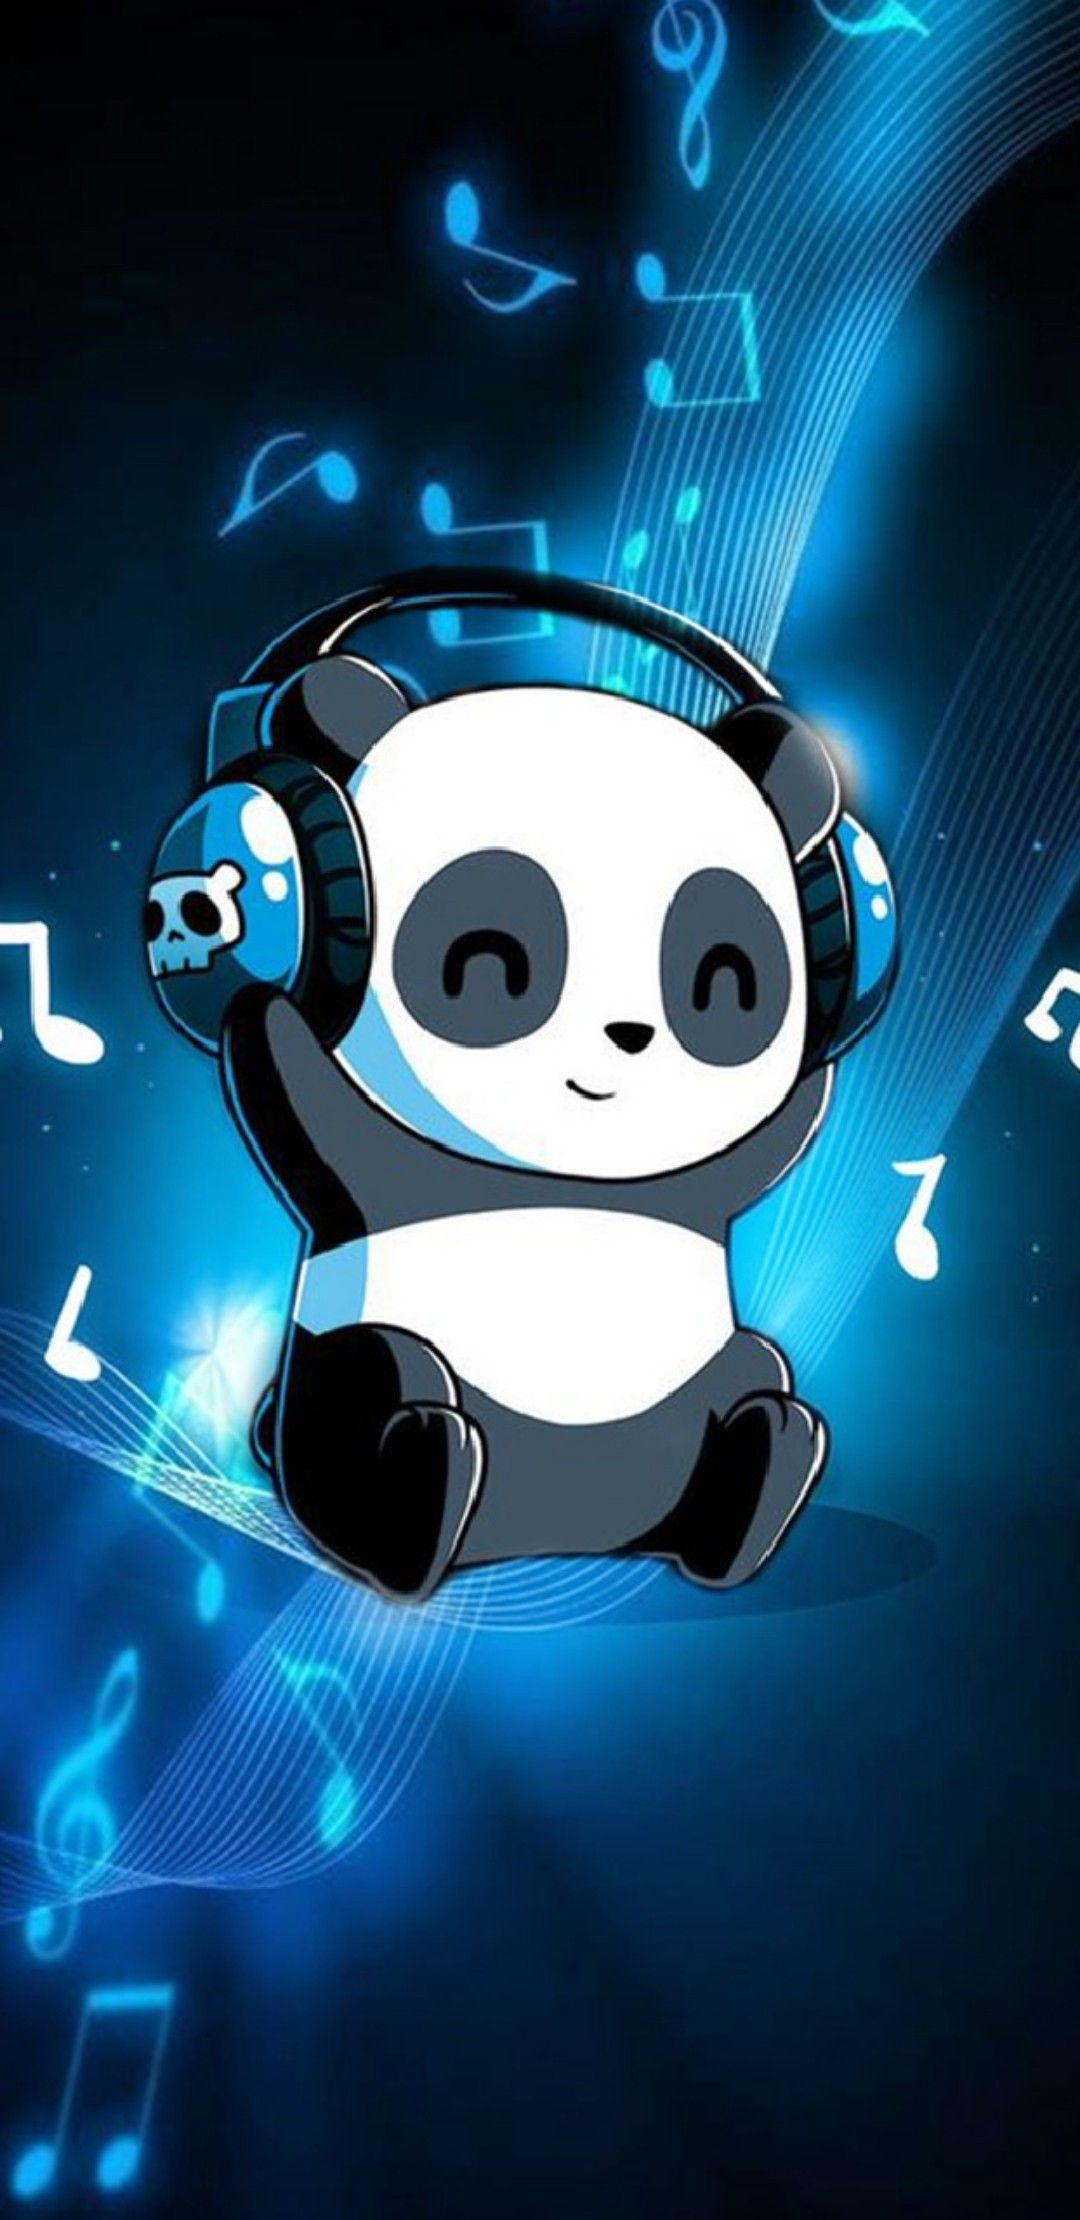 Anime Panda Wallpaper : anime, panda, wallpaper, Anime, Wallpaper, IPhone, Funny, Panda, Wallpaper,, Wallpapers,, Iphone